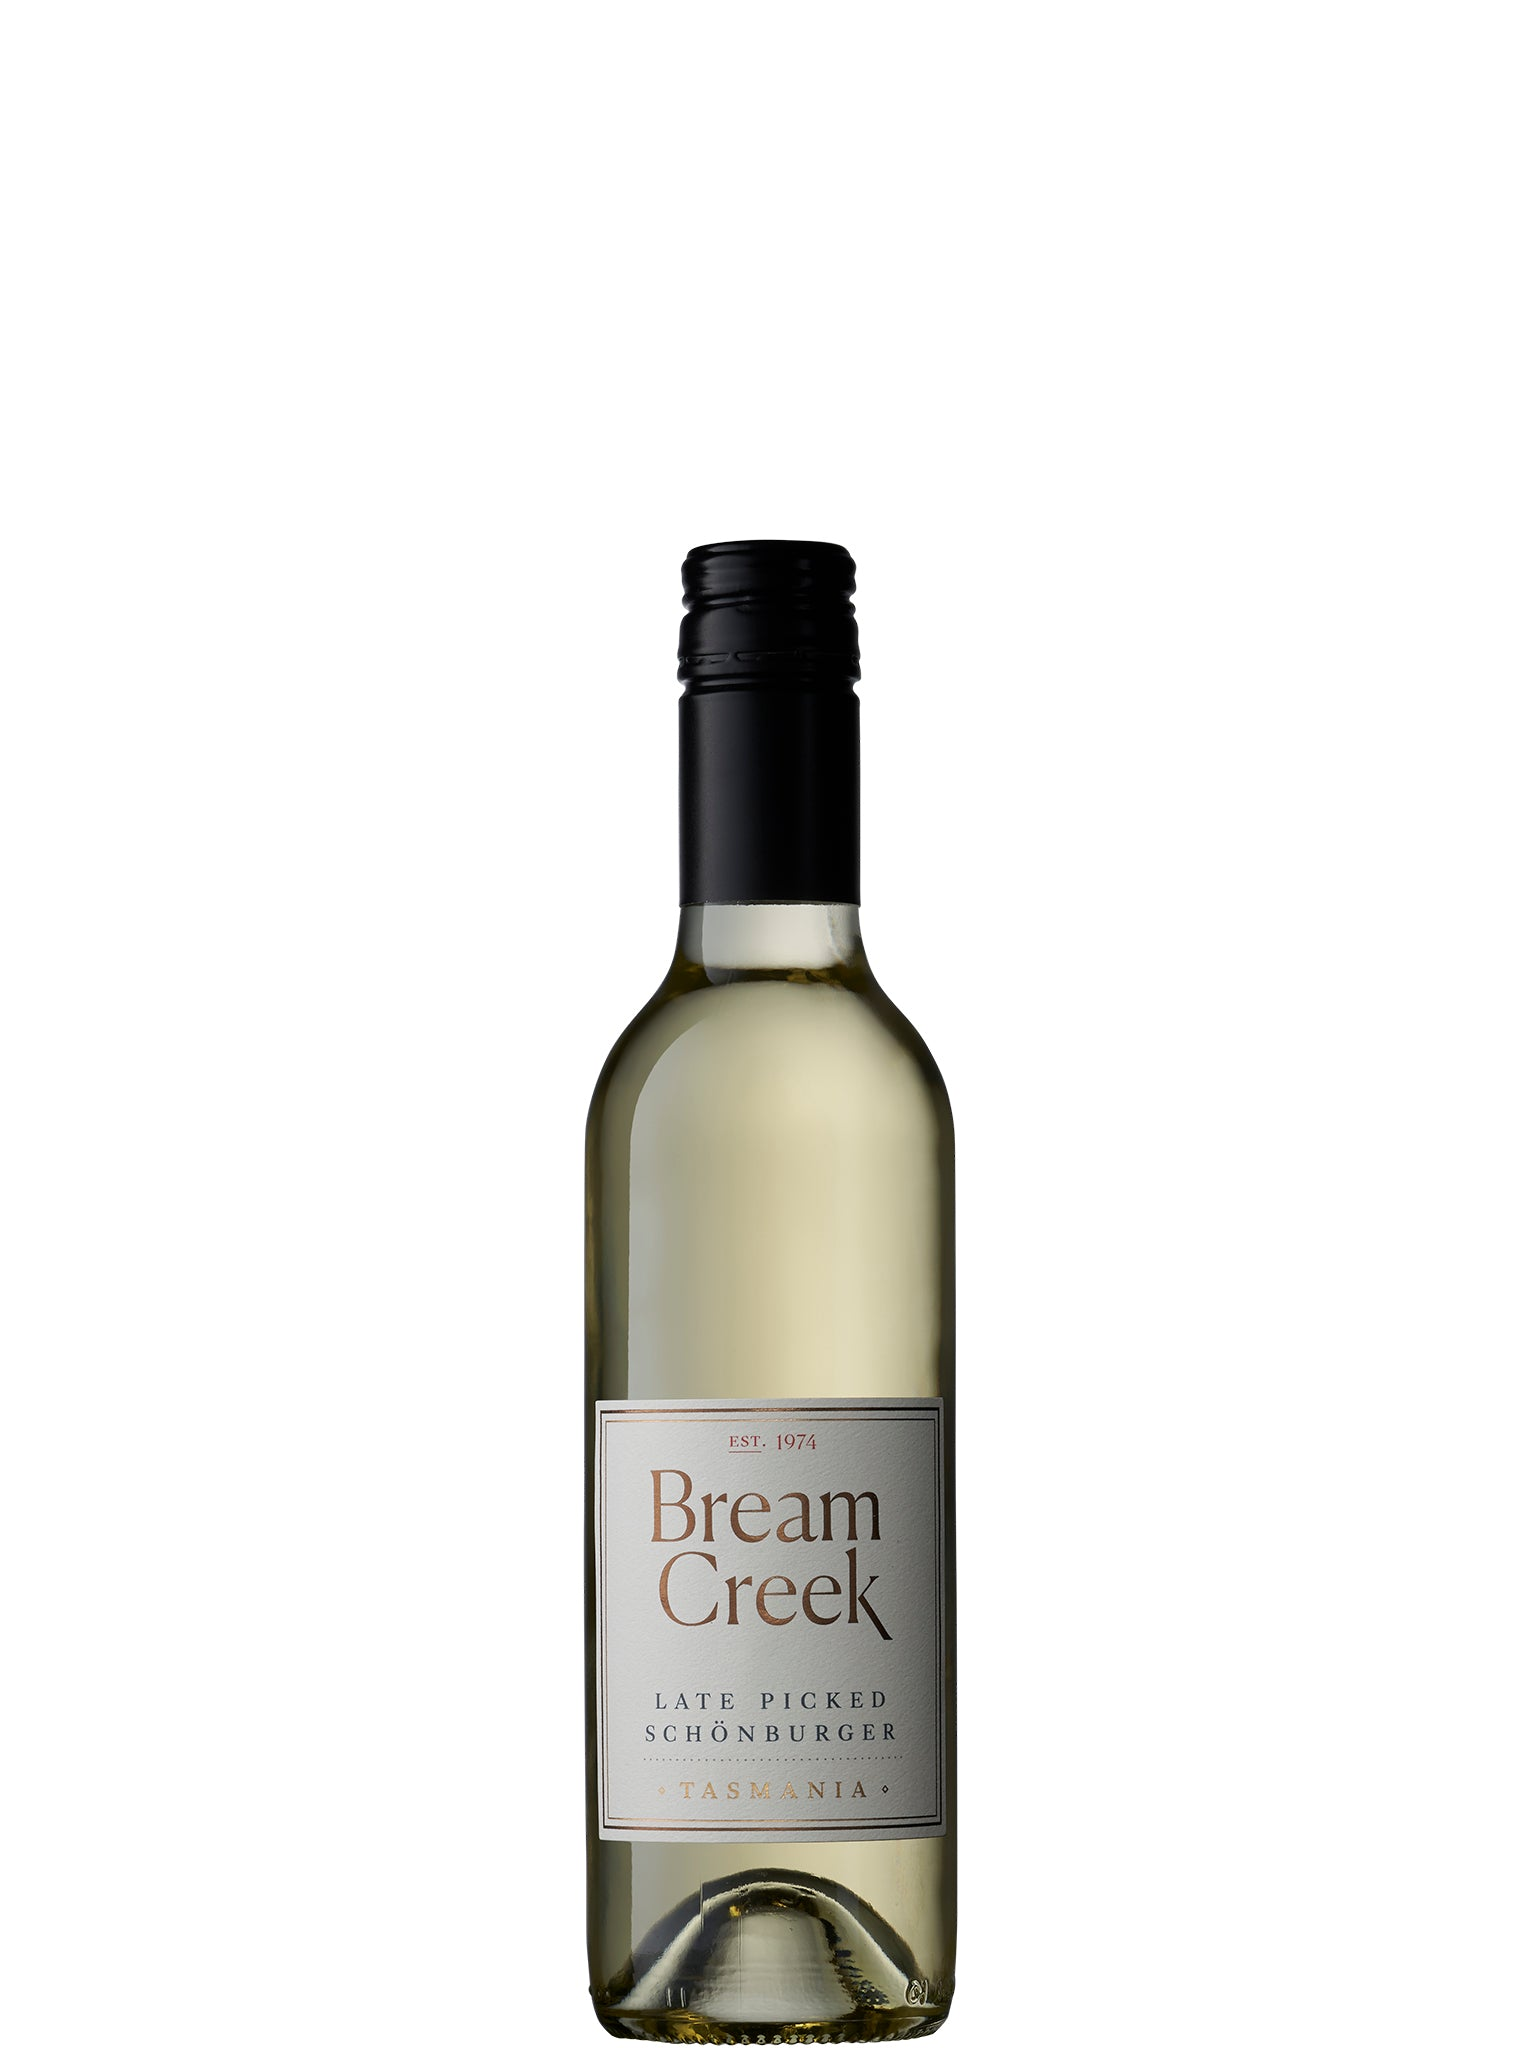 Bream Creek Late Picked Schönburger 375ml 2018